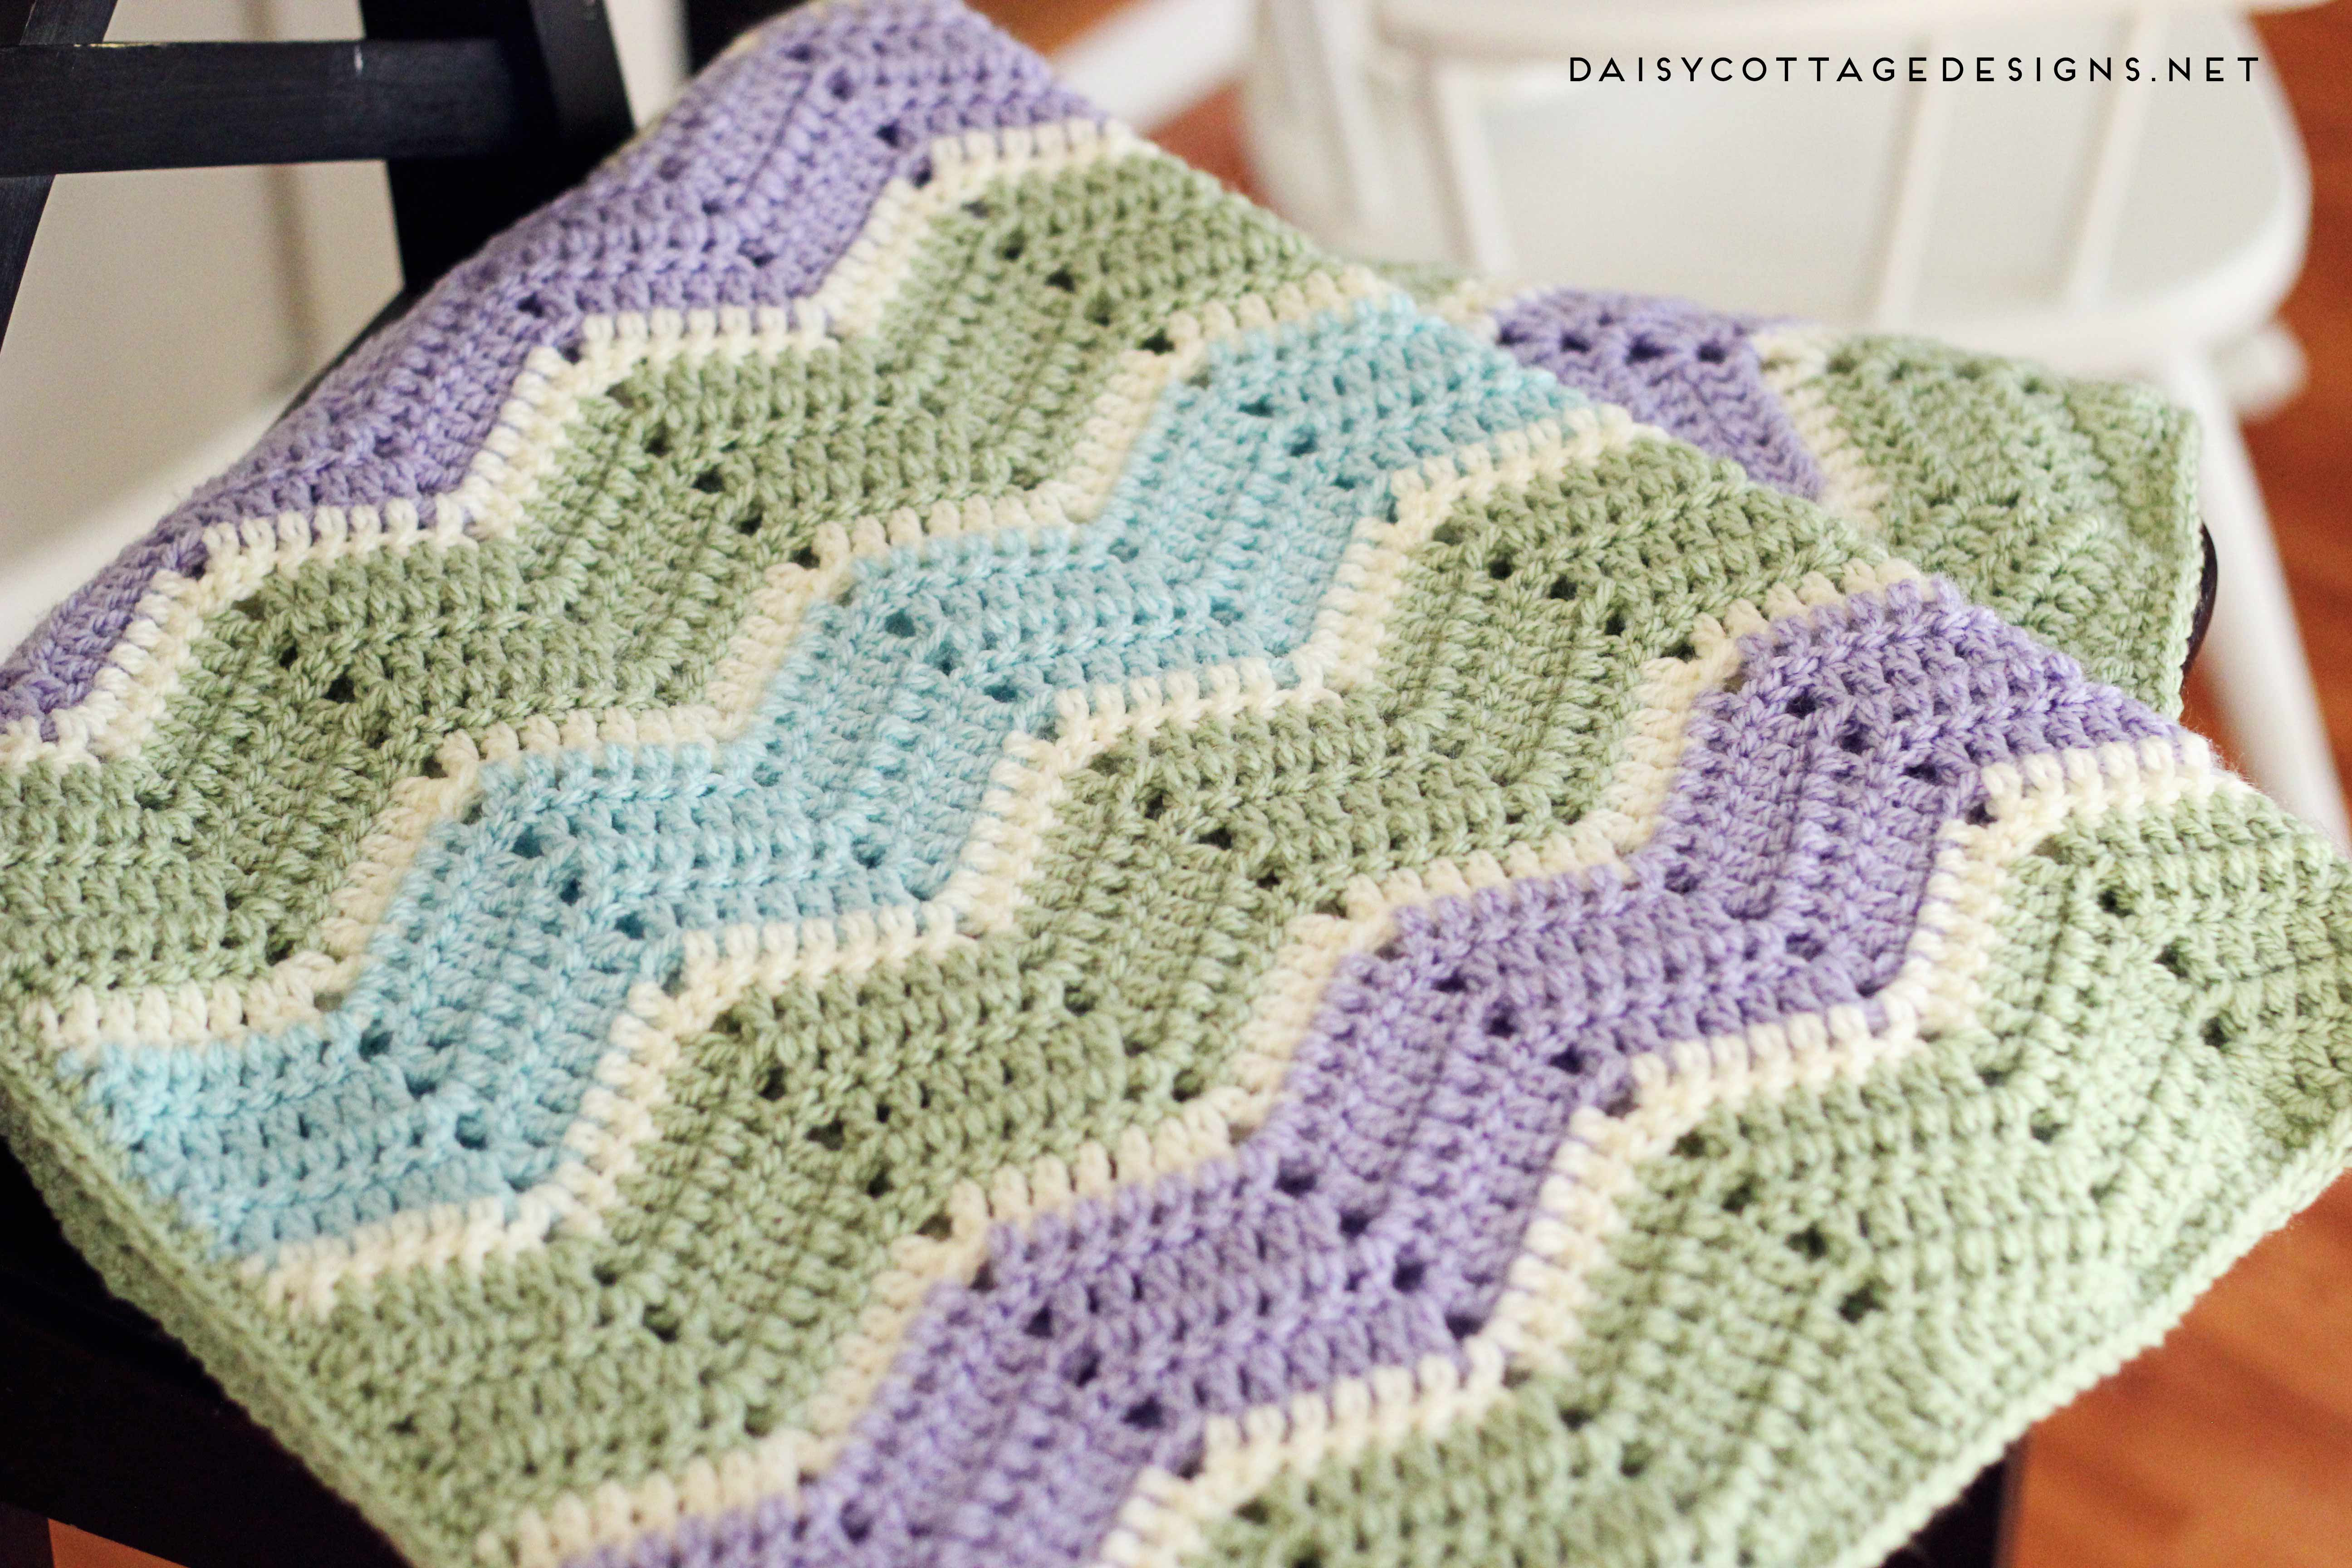 Beautiful Easy Chevron Blanket Crochet Pattern Daisy Cottage Designs Easiest Crochet Blanket Of New 50 Images Easiest Crochet Blanket